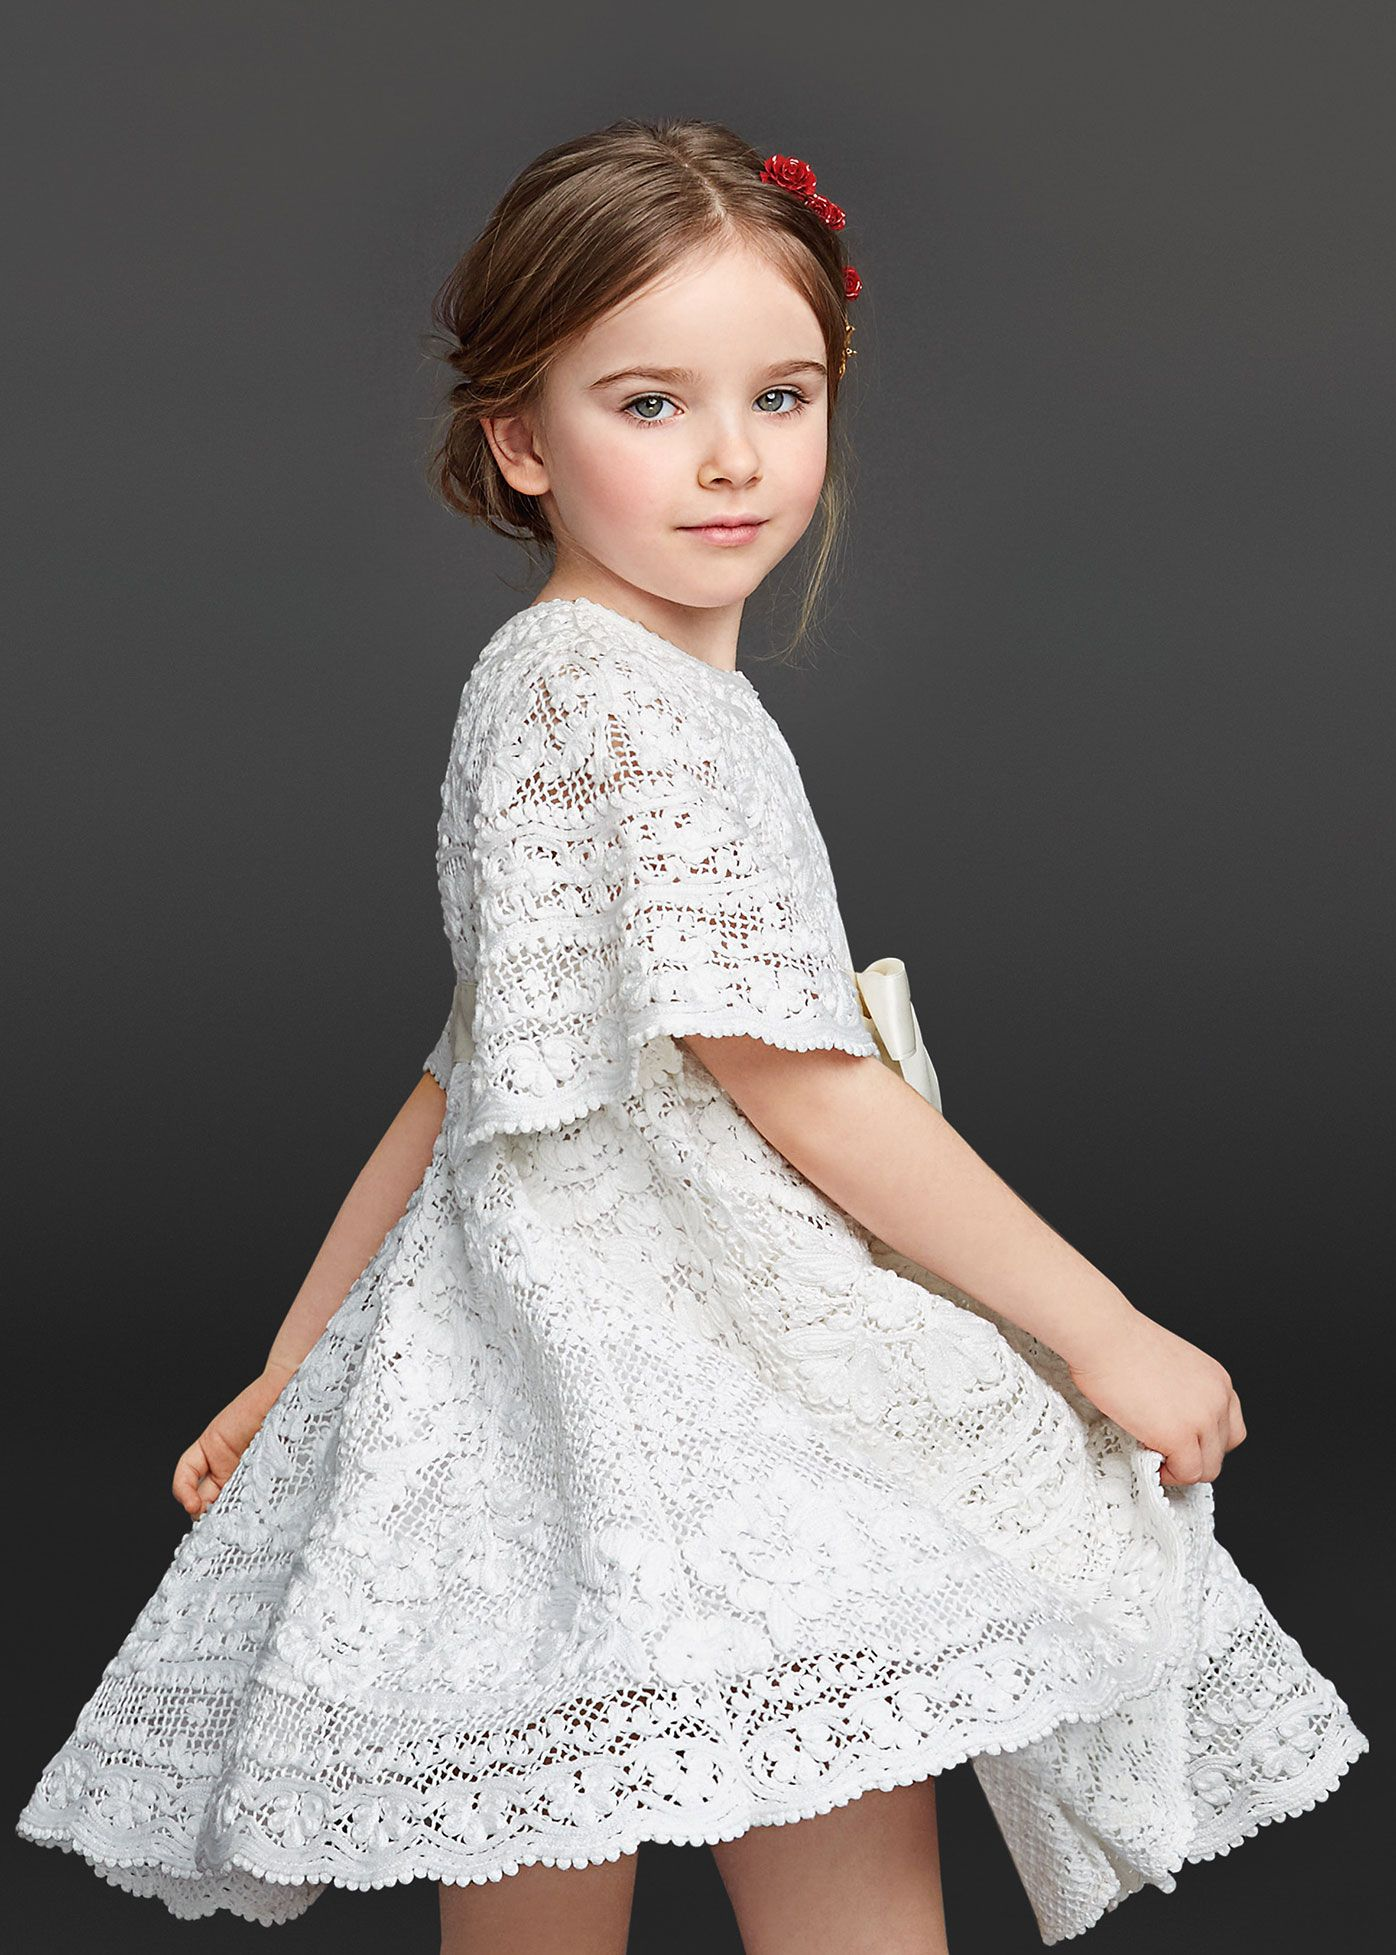 c54d1d9c7 Moda para niñas. Billedresultat for tecido para vestido rosa. Dolce    Gabbana Children Winter Collection 2016